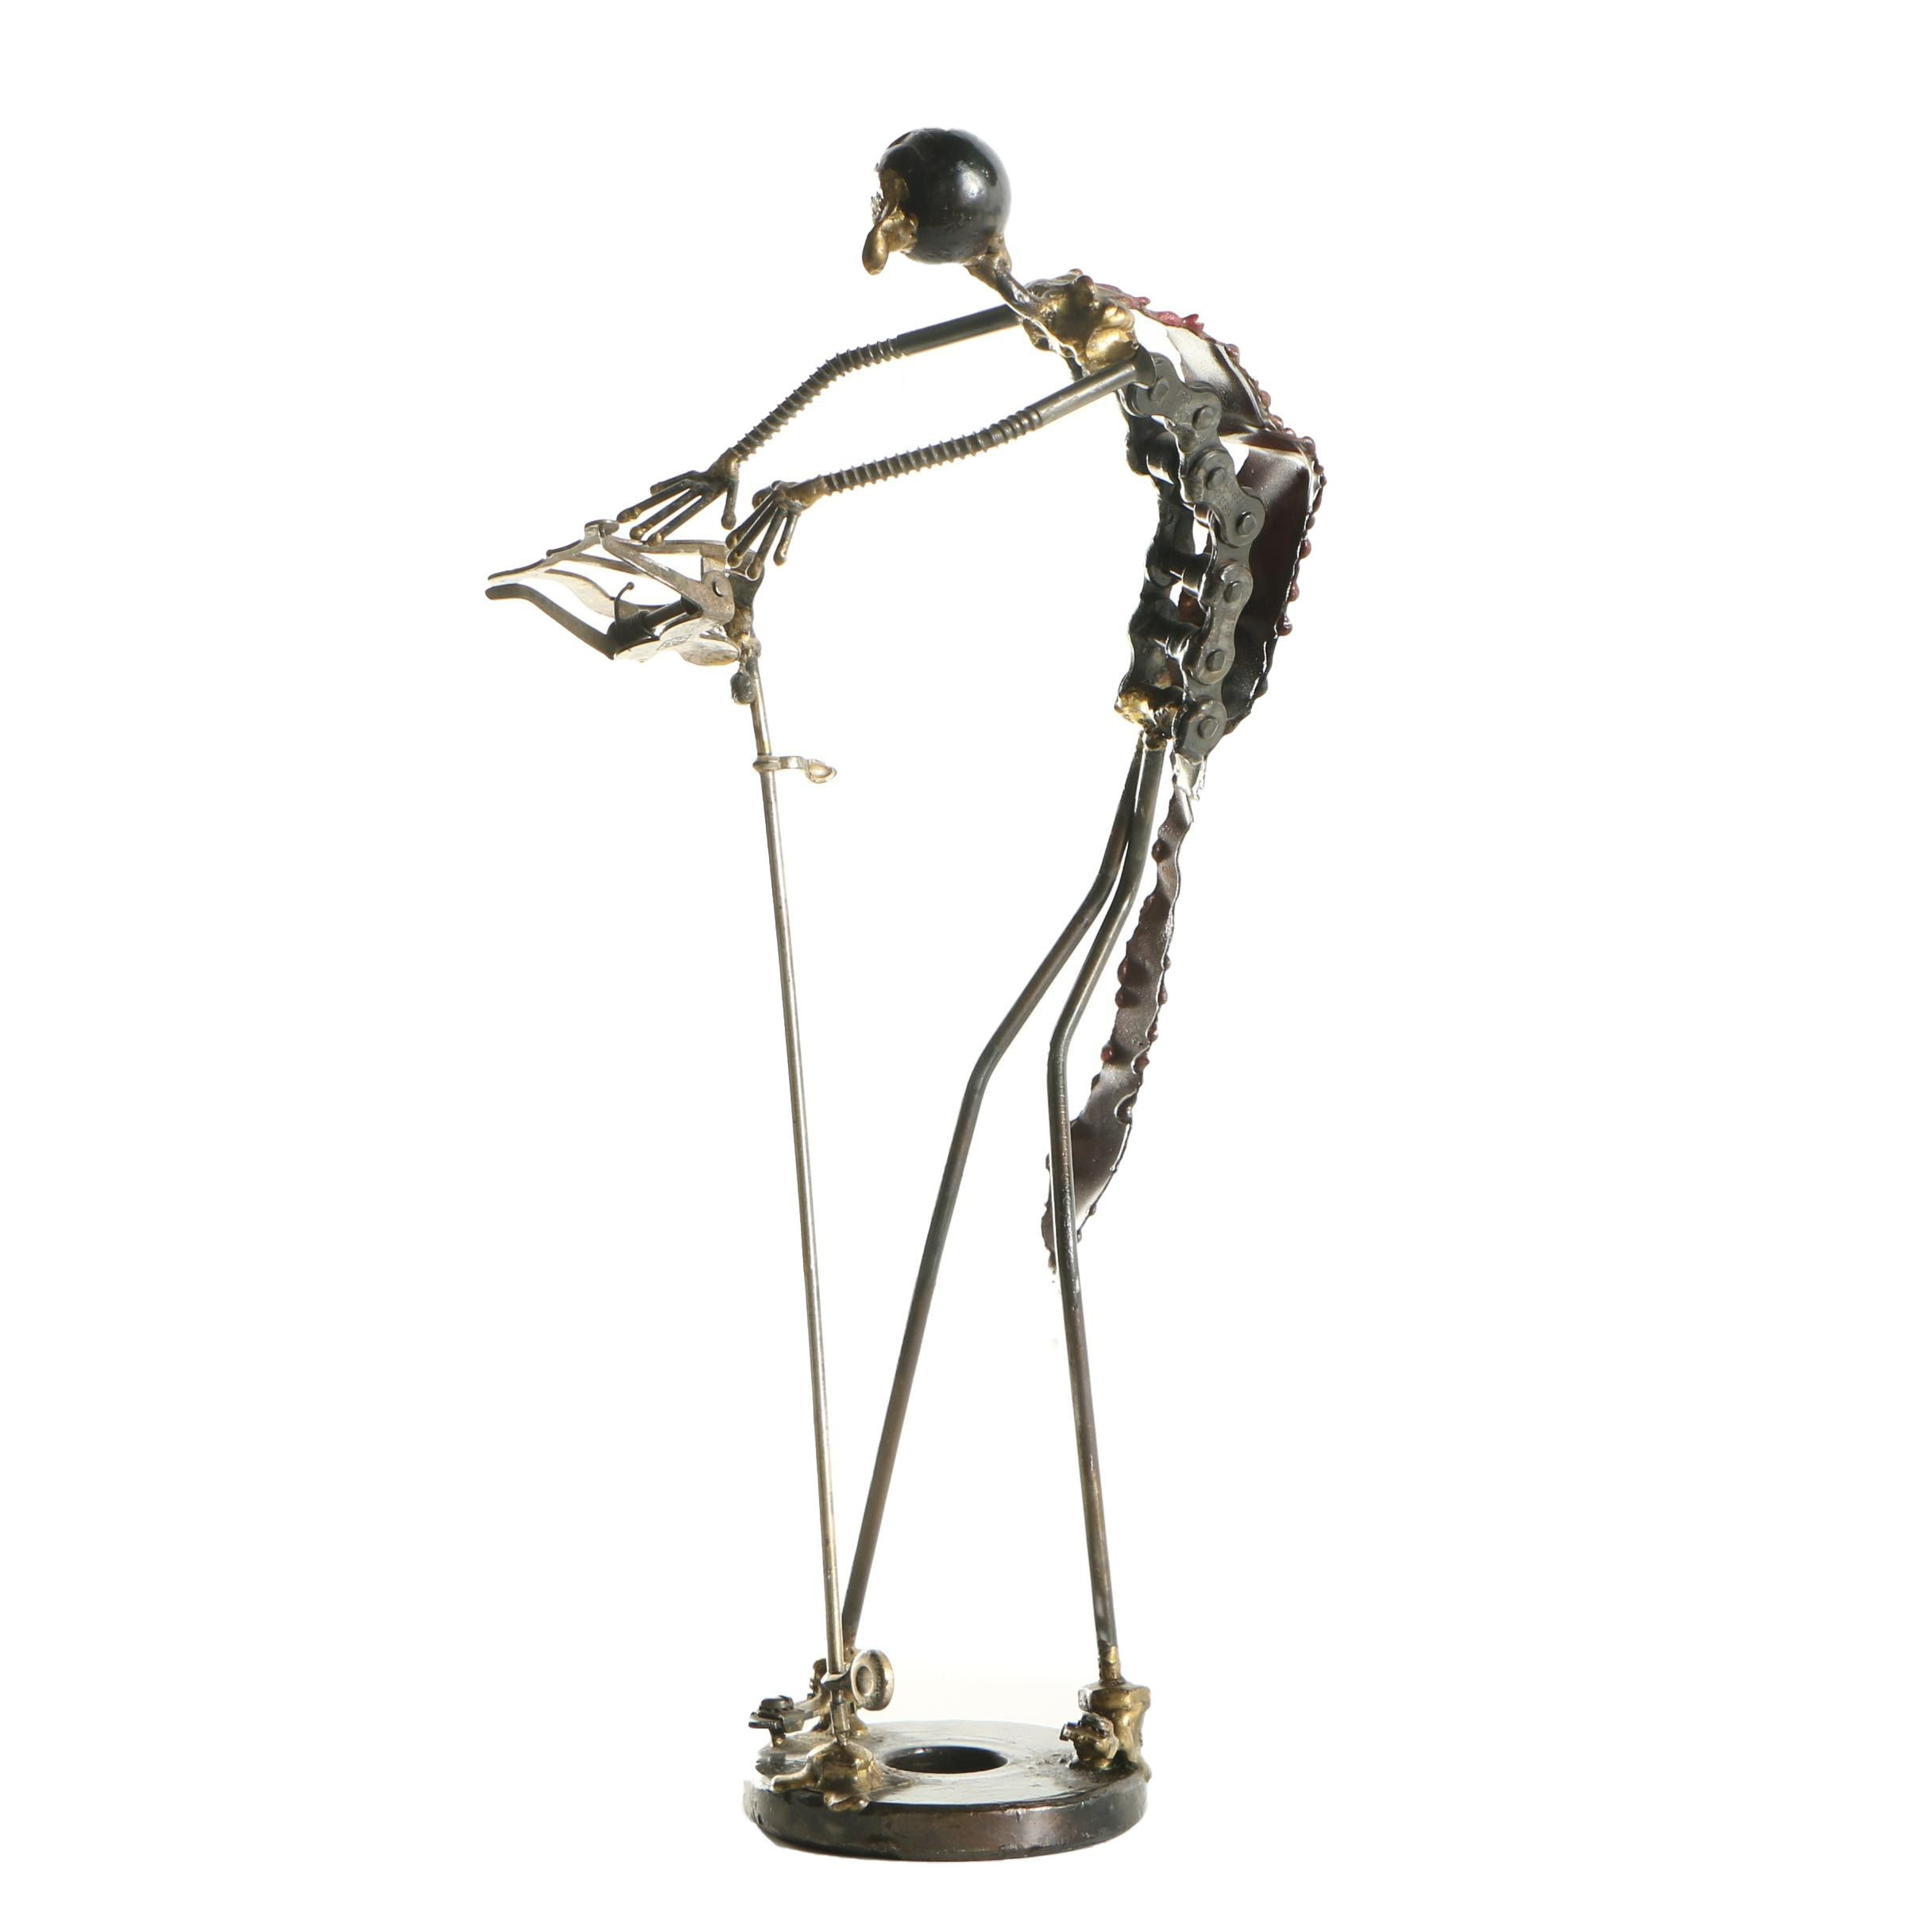 Metal Assemblage Sculpture of a Conductor